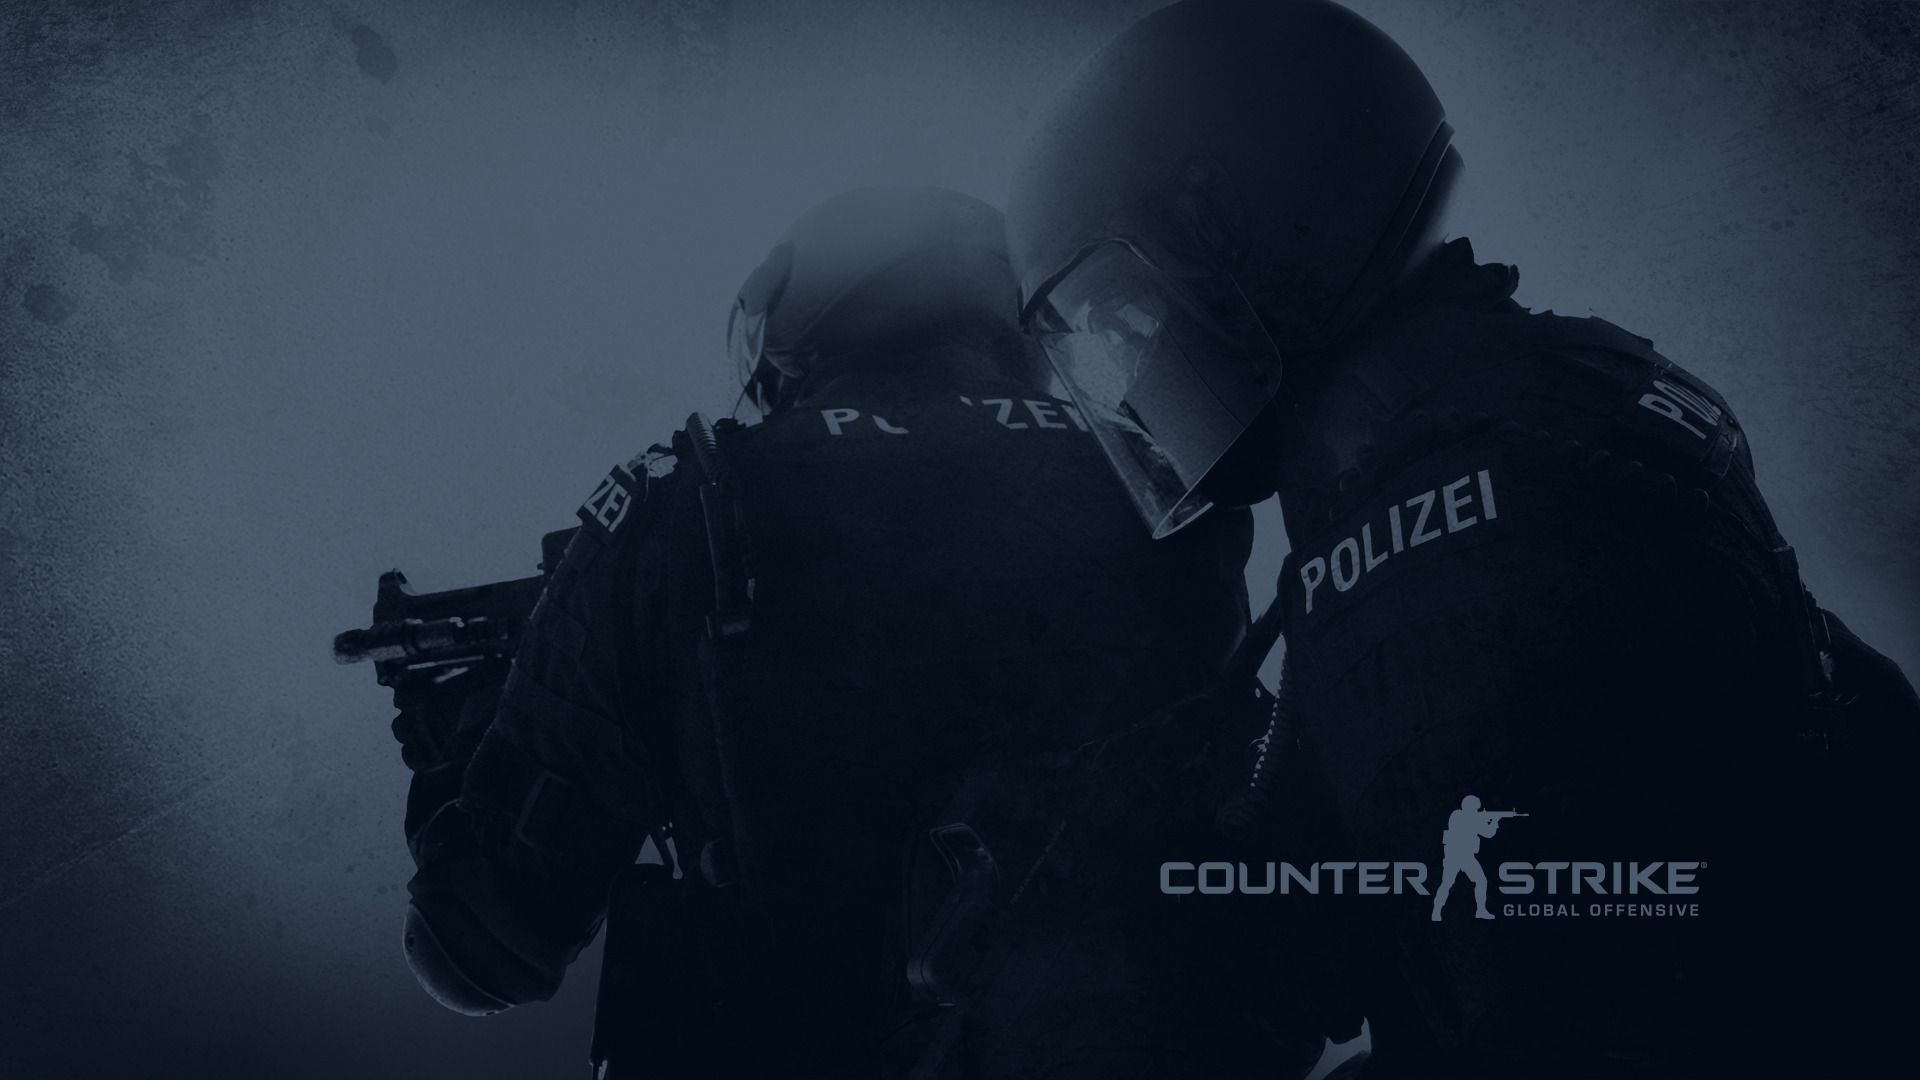 Csgo Counterstrike Global Offensive Ct Wallpaper 1920x1080 Csgo Wallpapers 1920x1080 Counter Strike Wallpapers Wallpapers 1920x1080